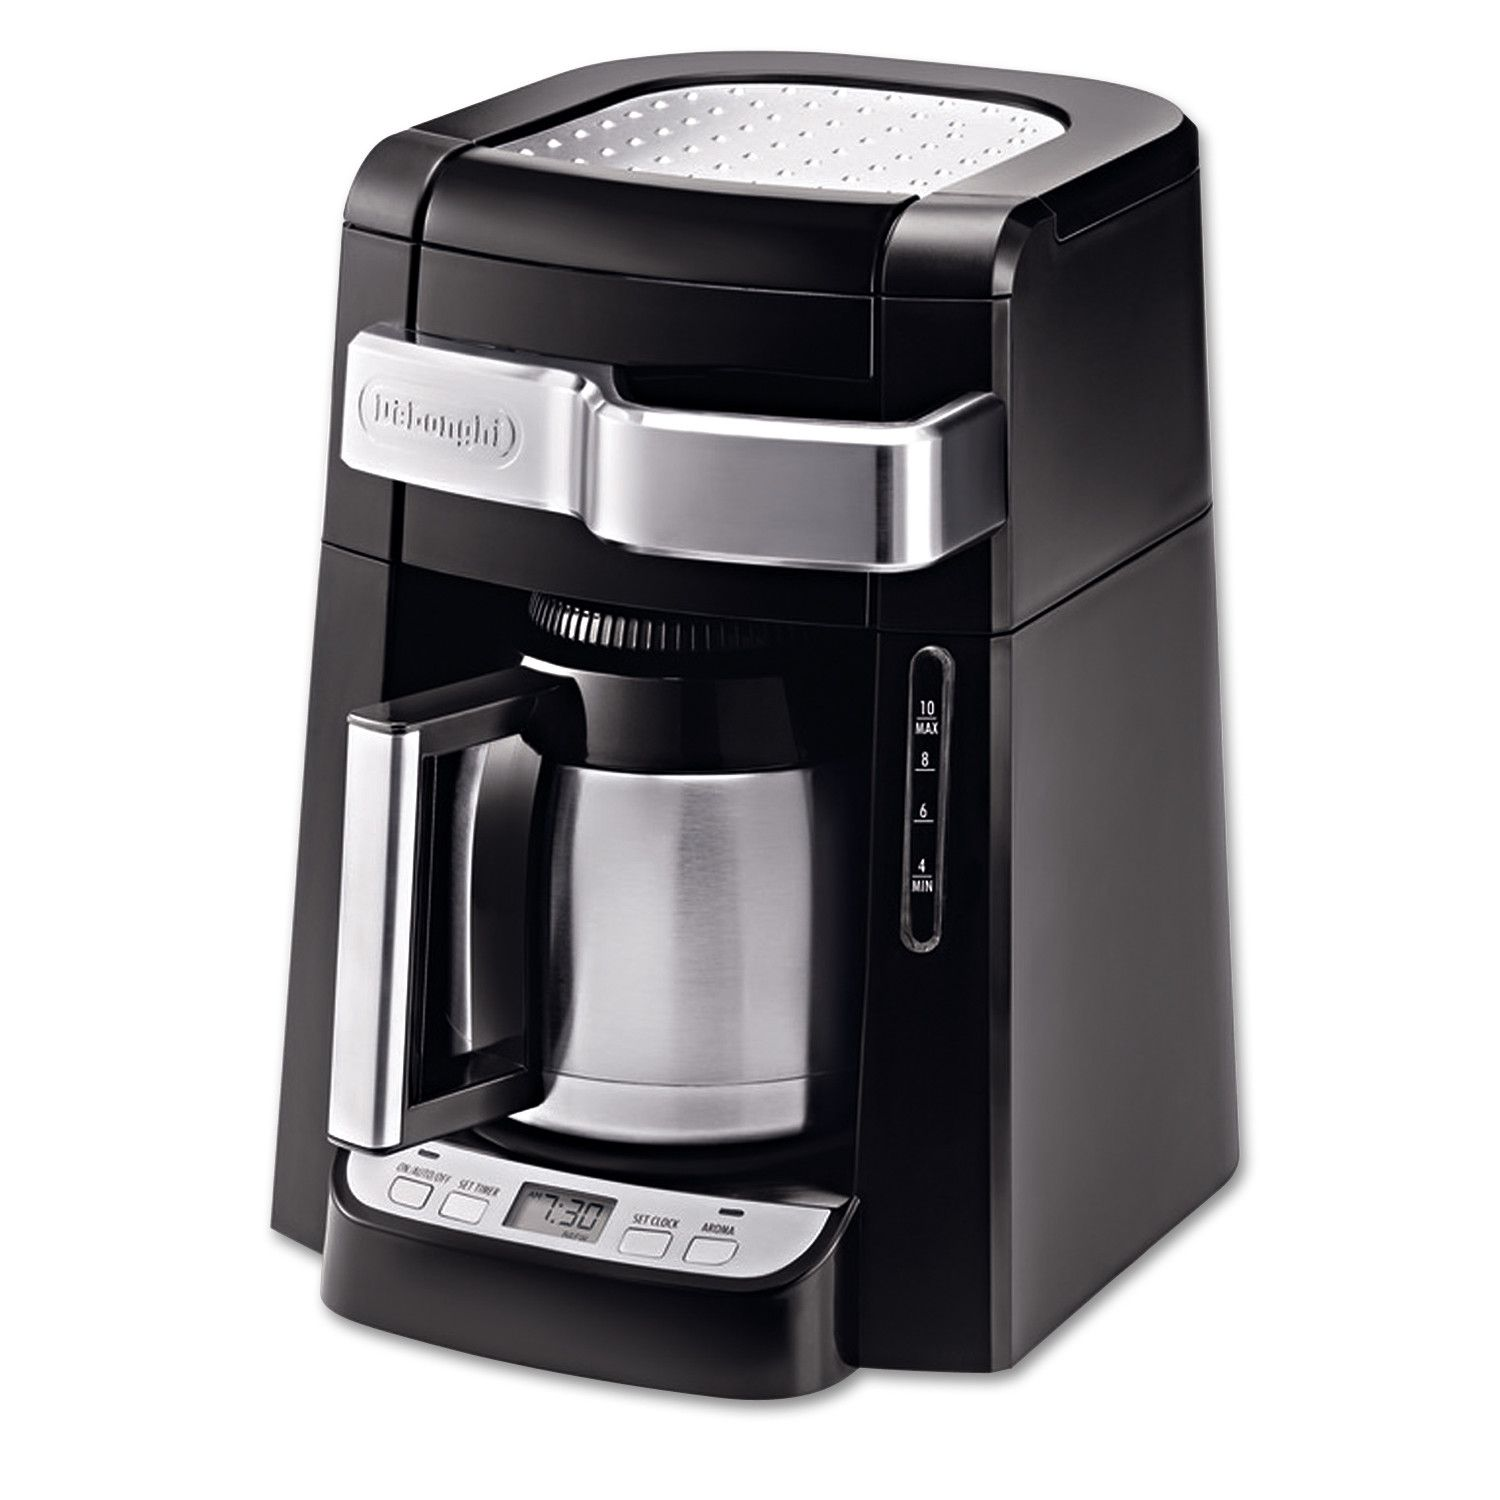 cup frontal access coffee maker products pinterest coffee